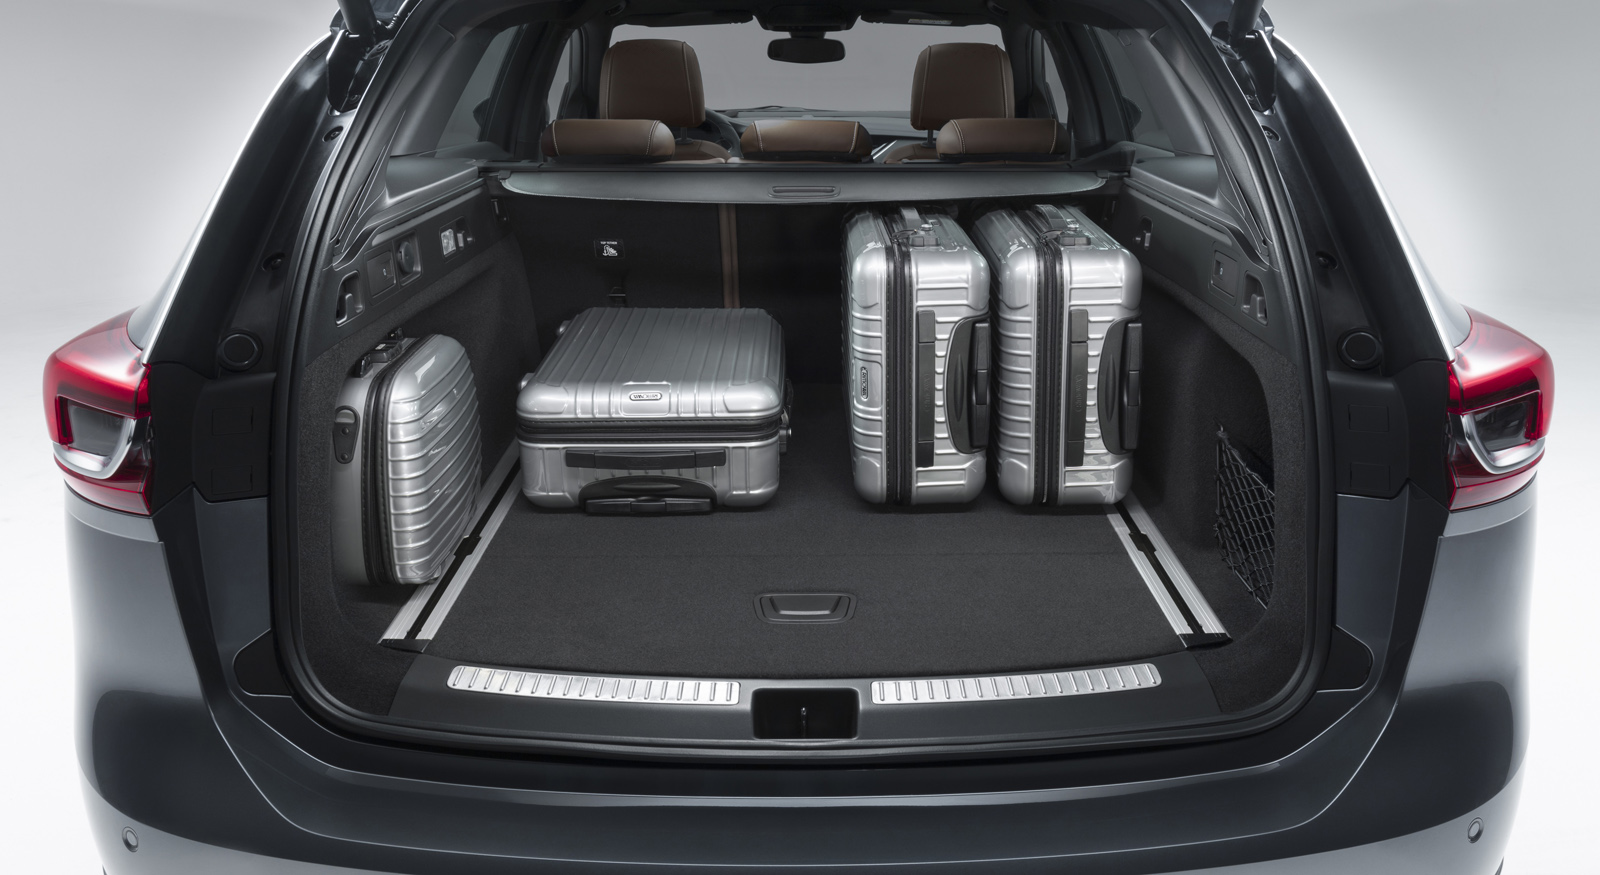 Perfect for packing: The trunk of the new Opel Insignia Sports Tourer offers lots of space, a wide load surface and – with the FlexOrganizer pack – luggage nets and fastening rails in the floor.